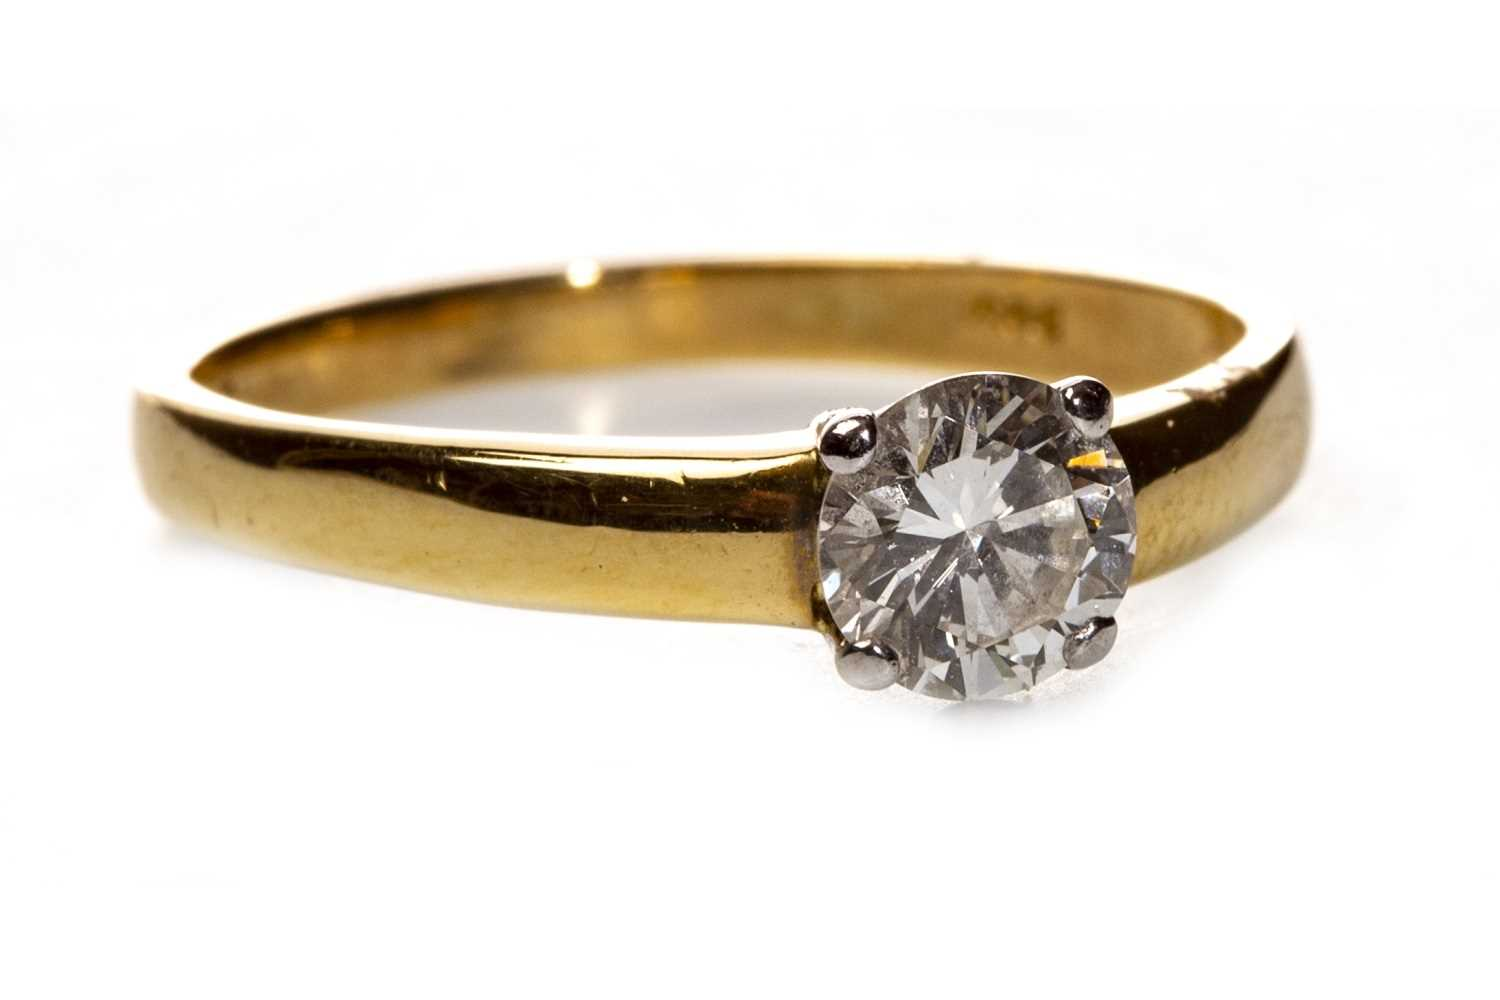 Lot 70-A DIAMOND SOLITAIRE RING